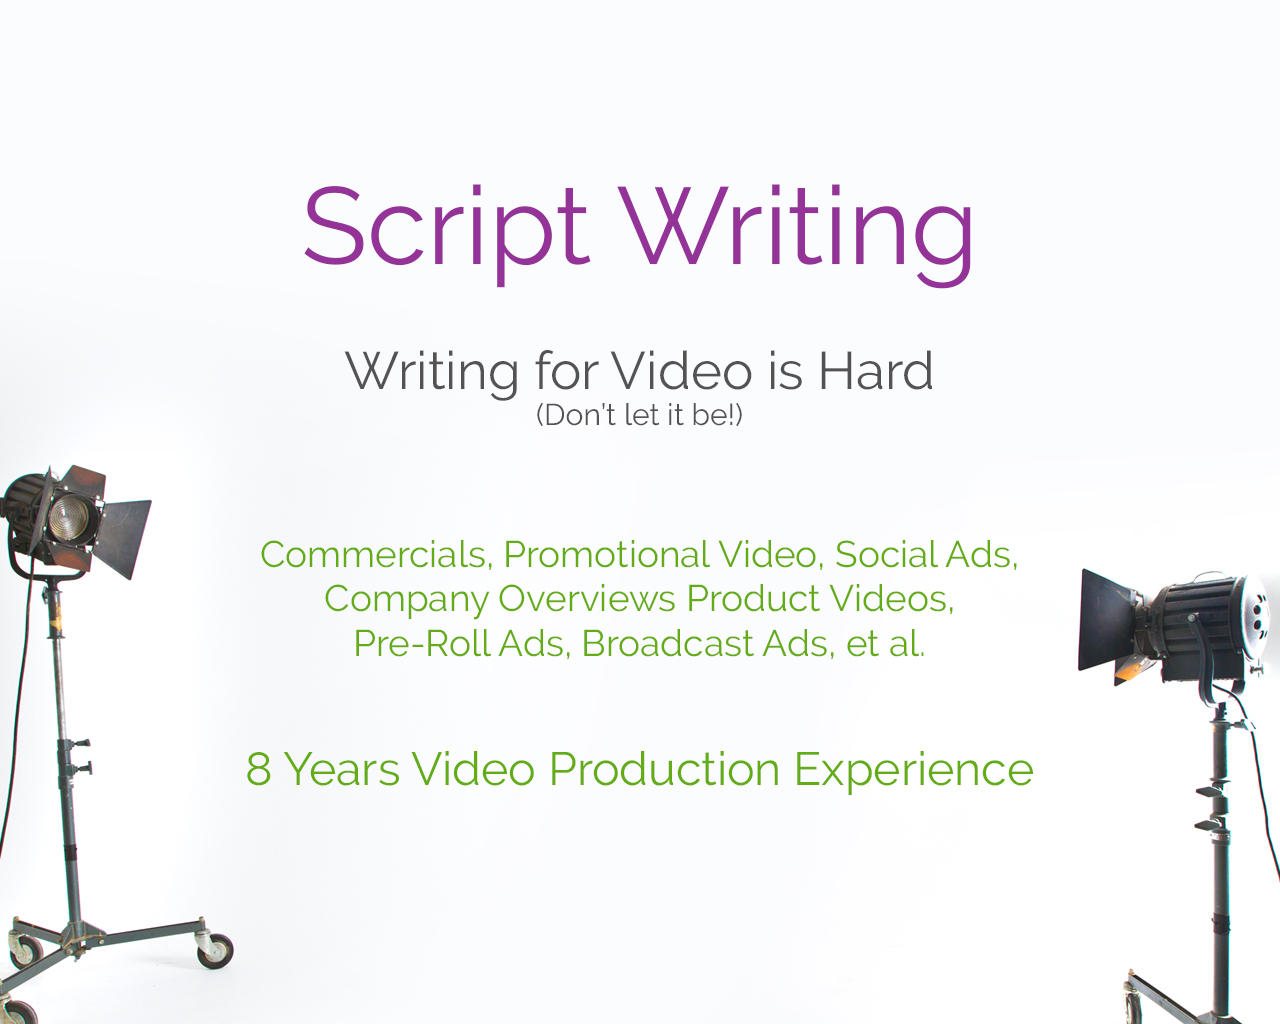 Commercial Script Writing by frogjump - 107031